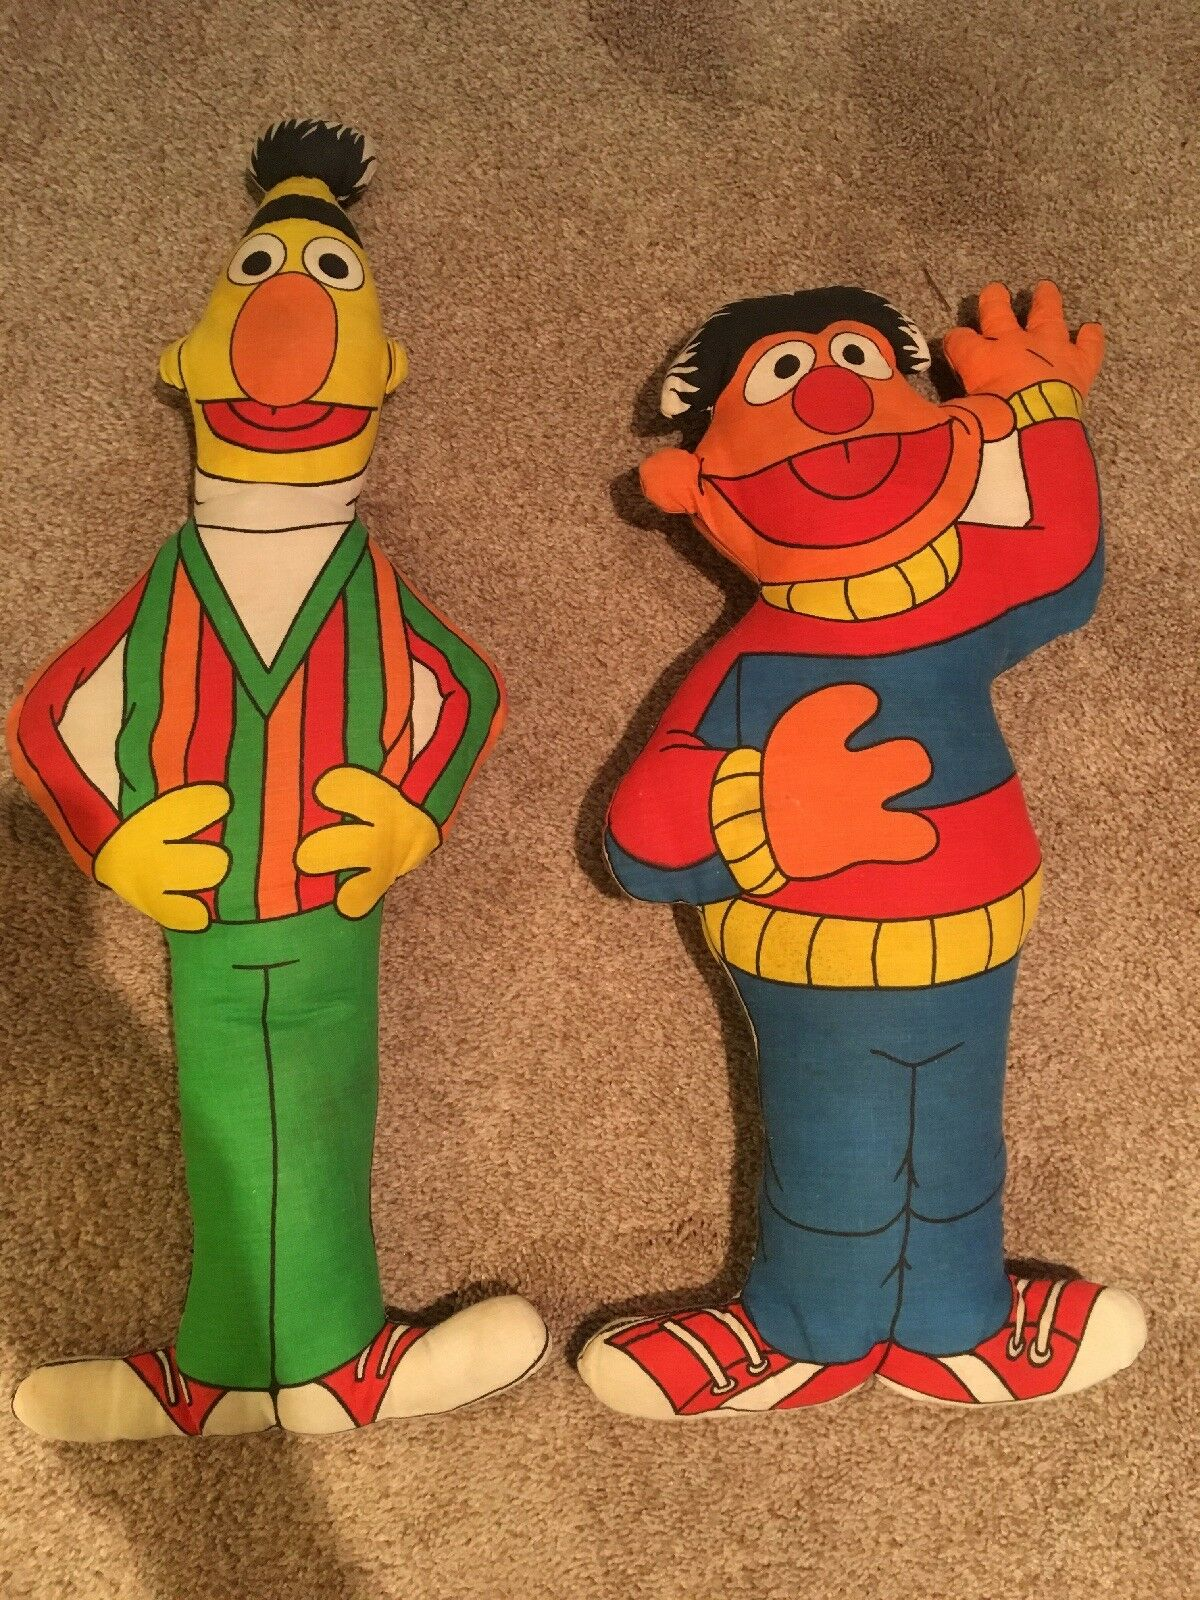 Vintage Bert And Ernie Muppets Inc. Plush Doll Figures 16 And 18 Inches